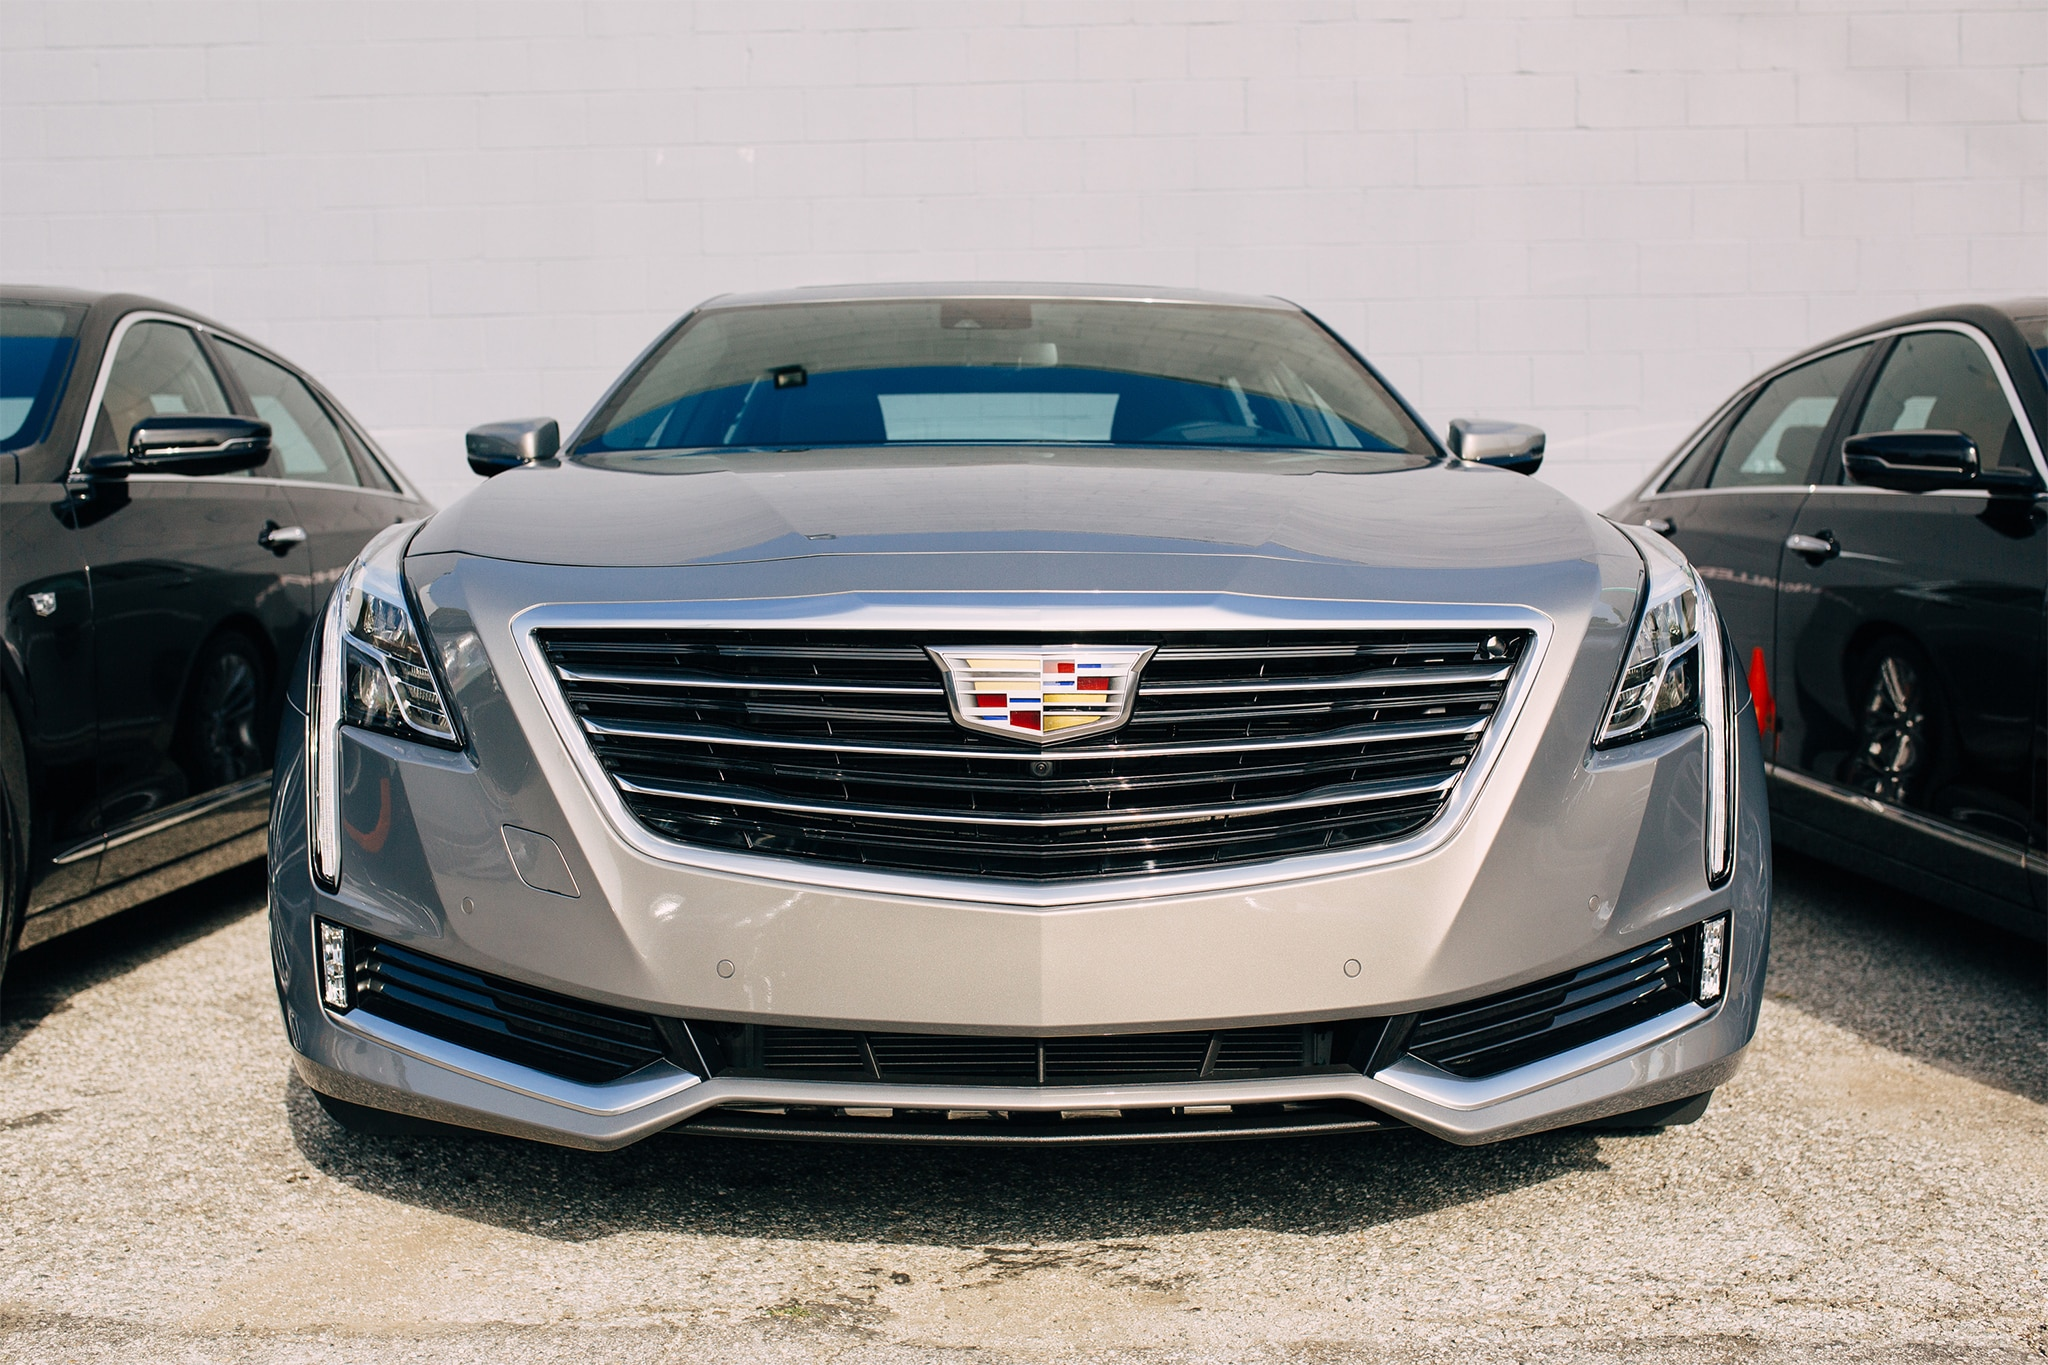 2017 cadillac ct6 plug in hybrid first drive review. Black Bedroom Furniture Sets. Home Design Ideas